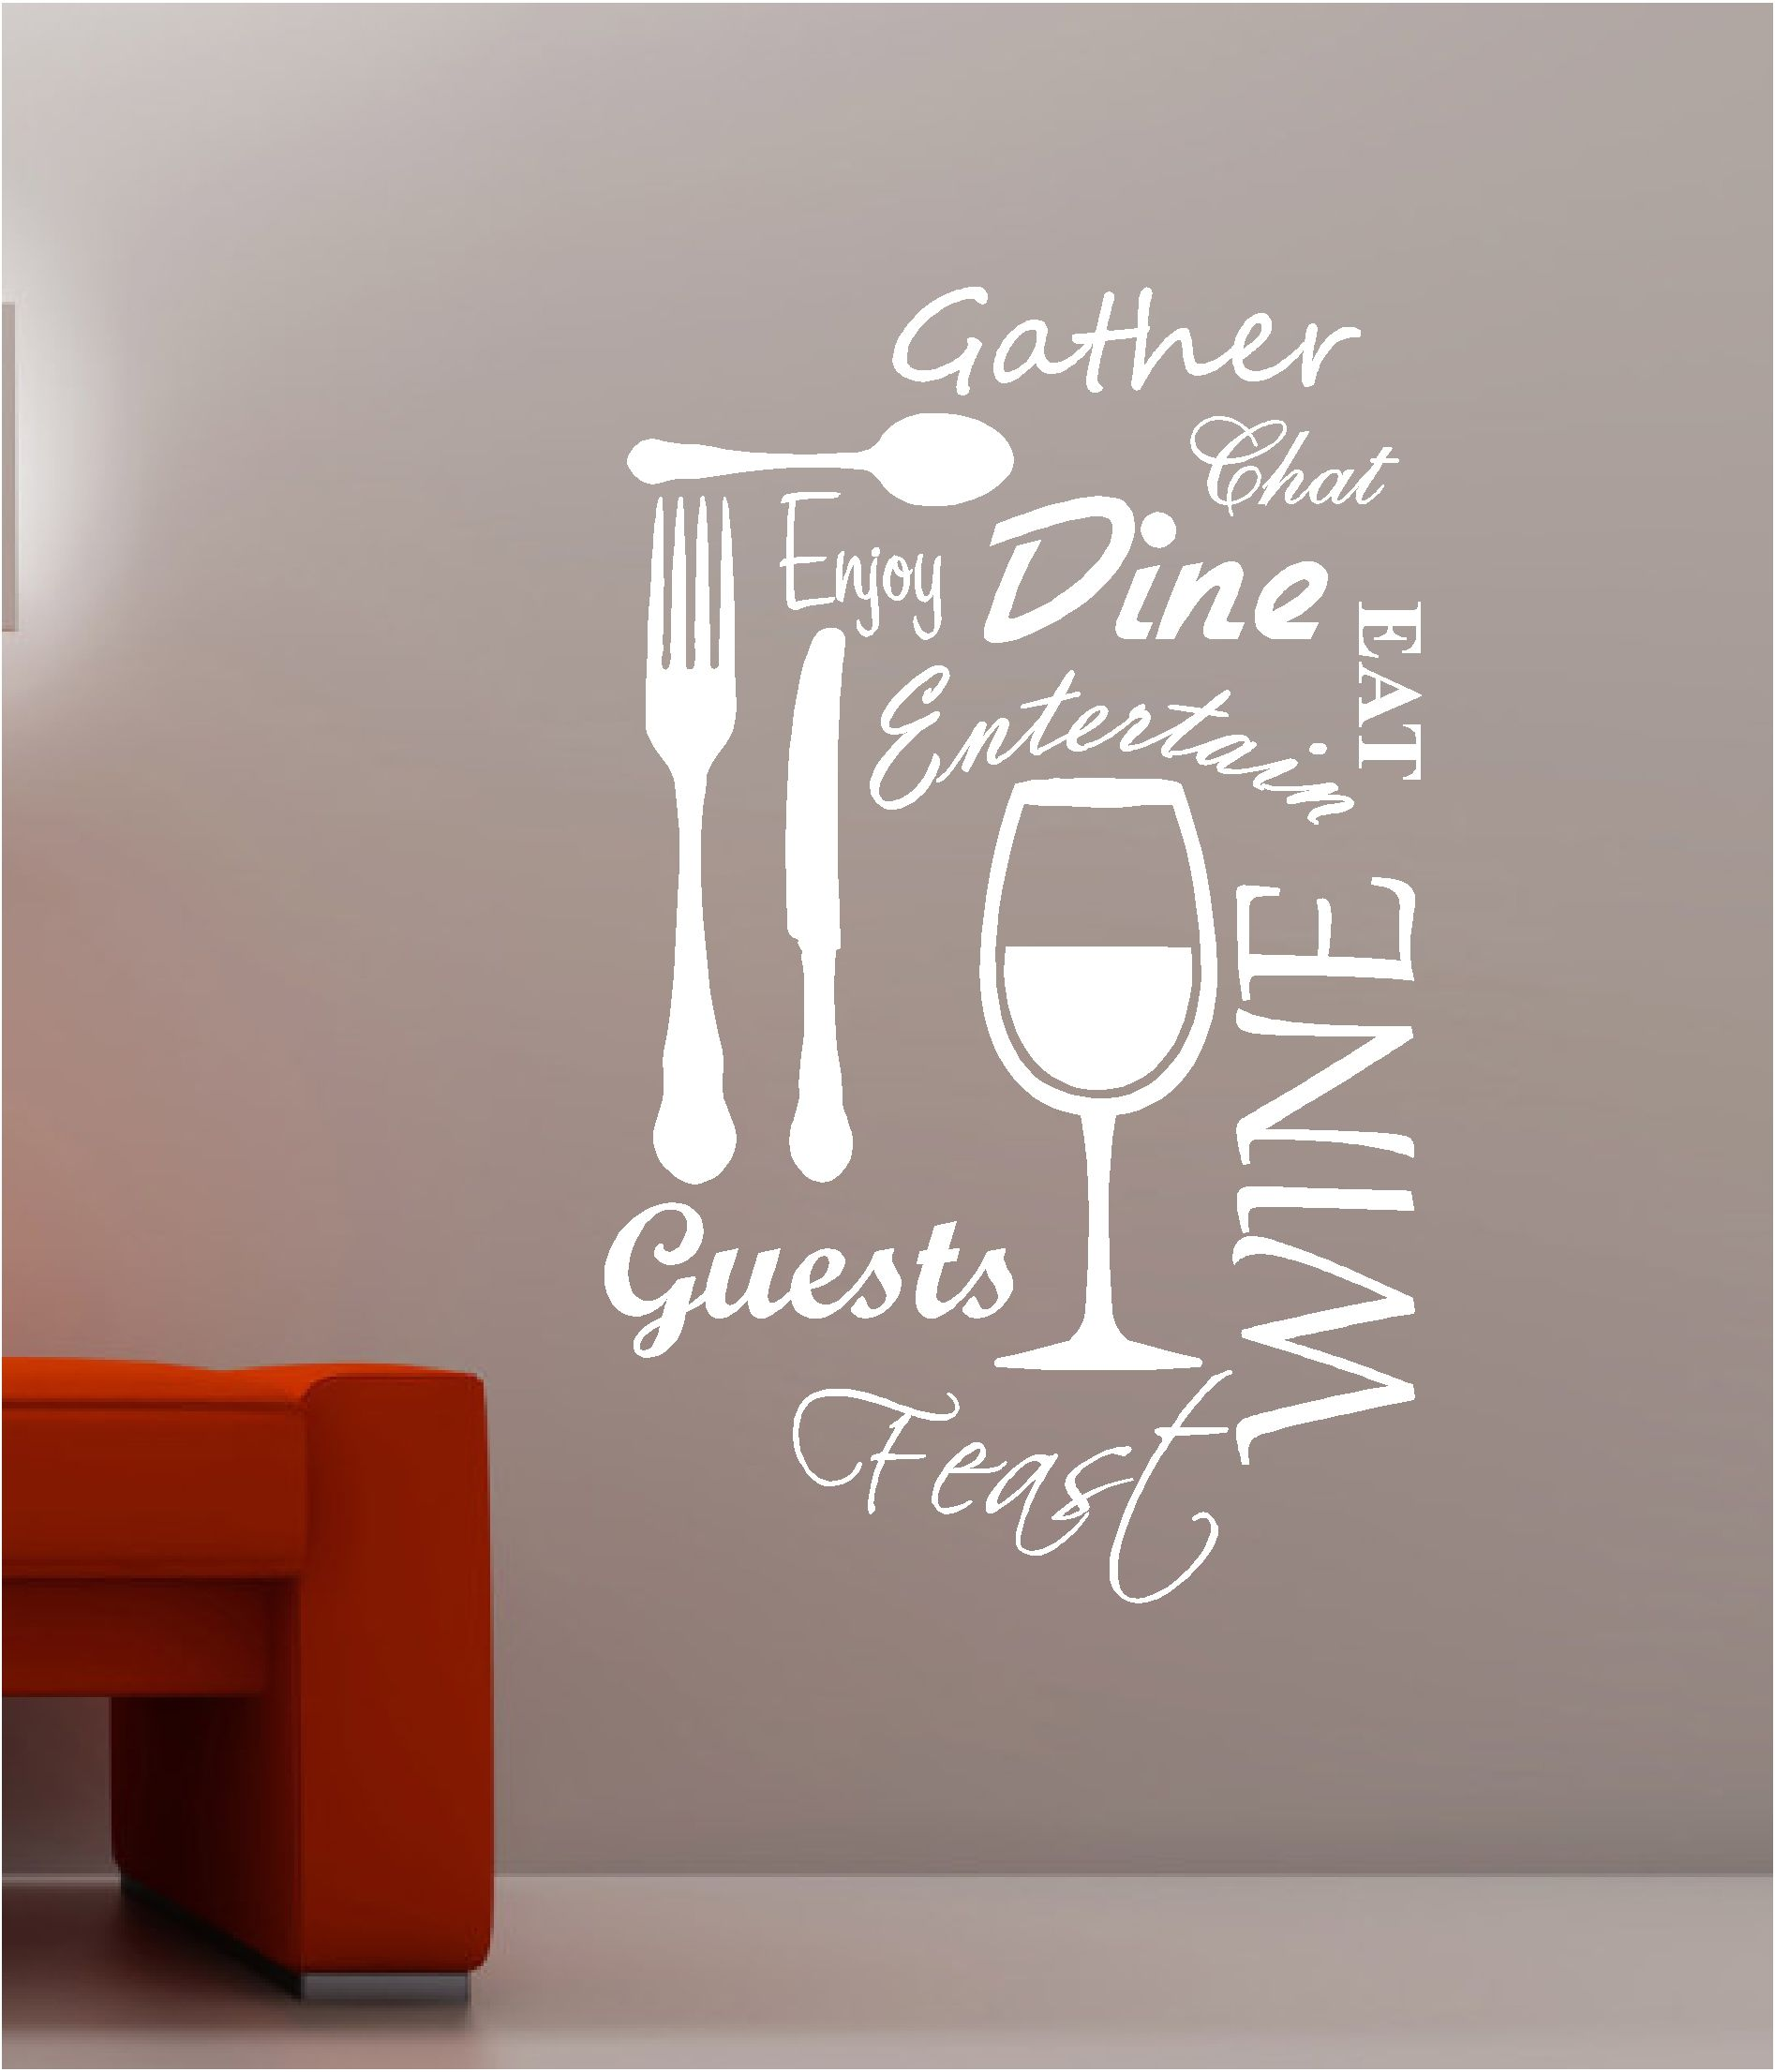 Wall Art Ideas And Inspiration Kitchen Words Vinyl Wall Art - Custom vinyl wall decals sayings for kitchen